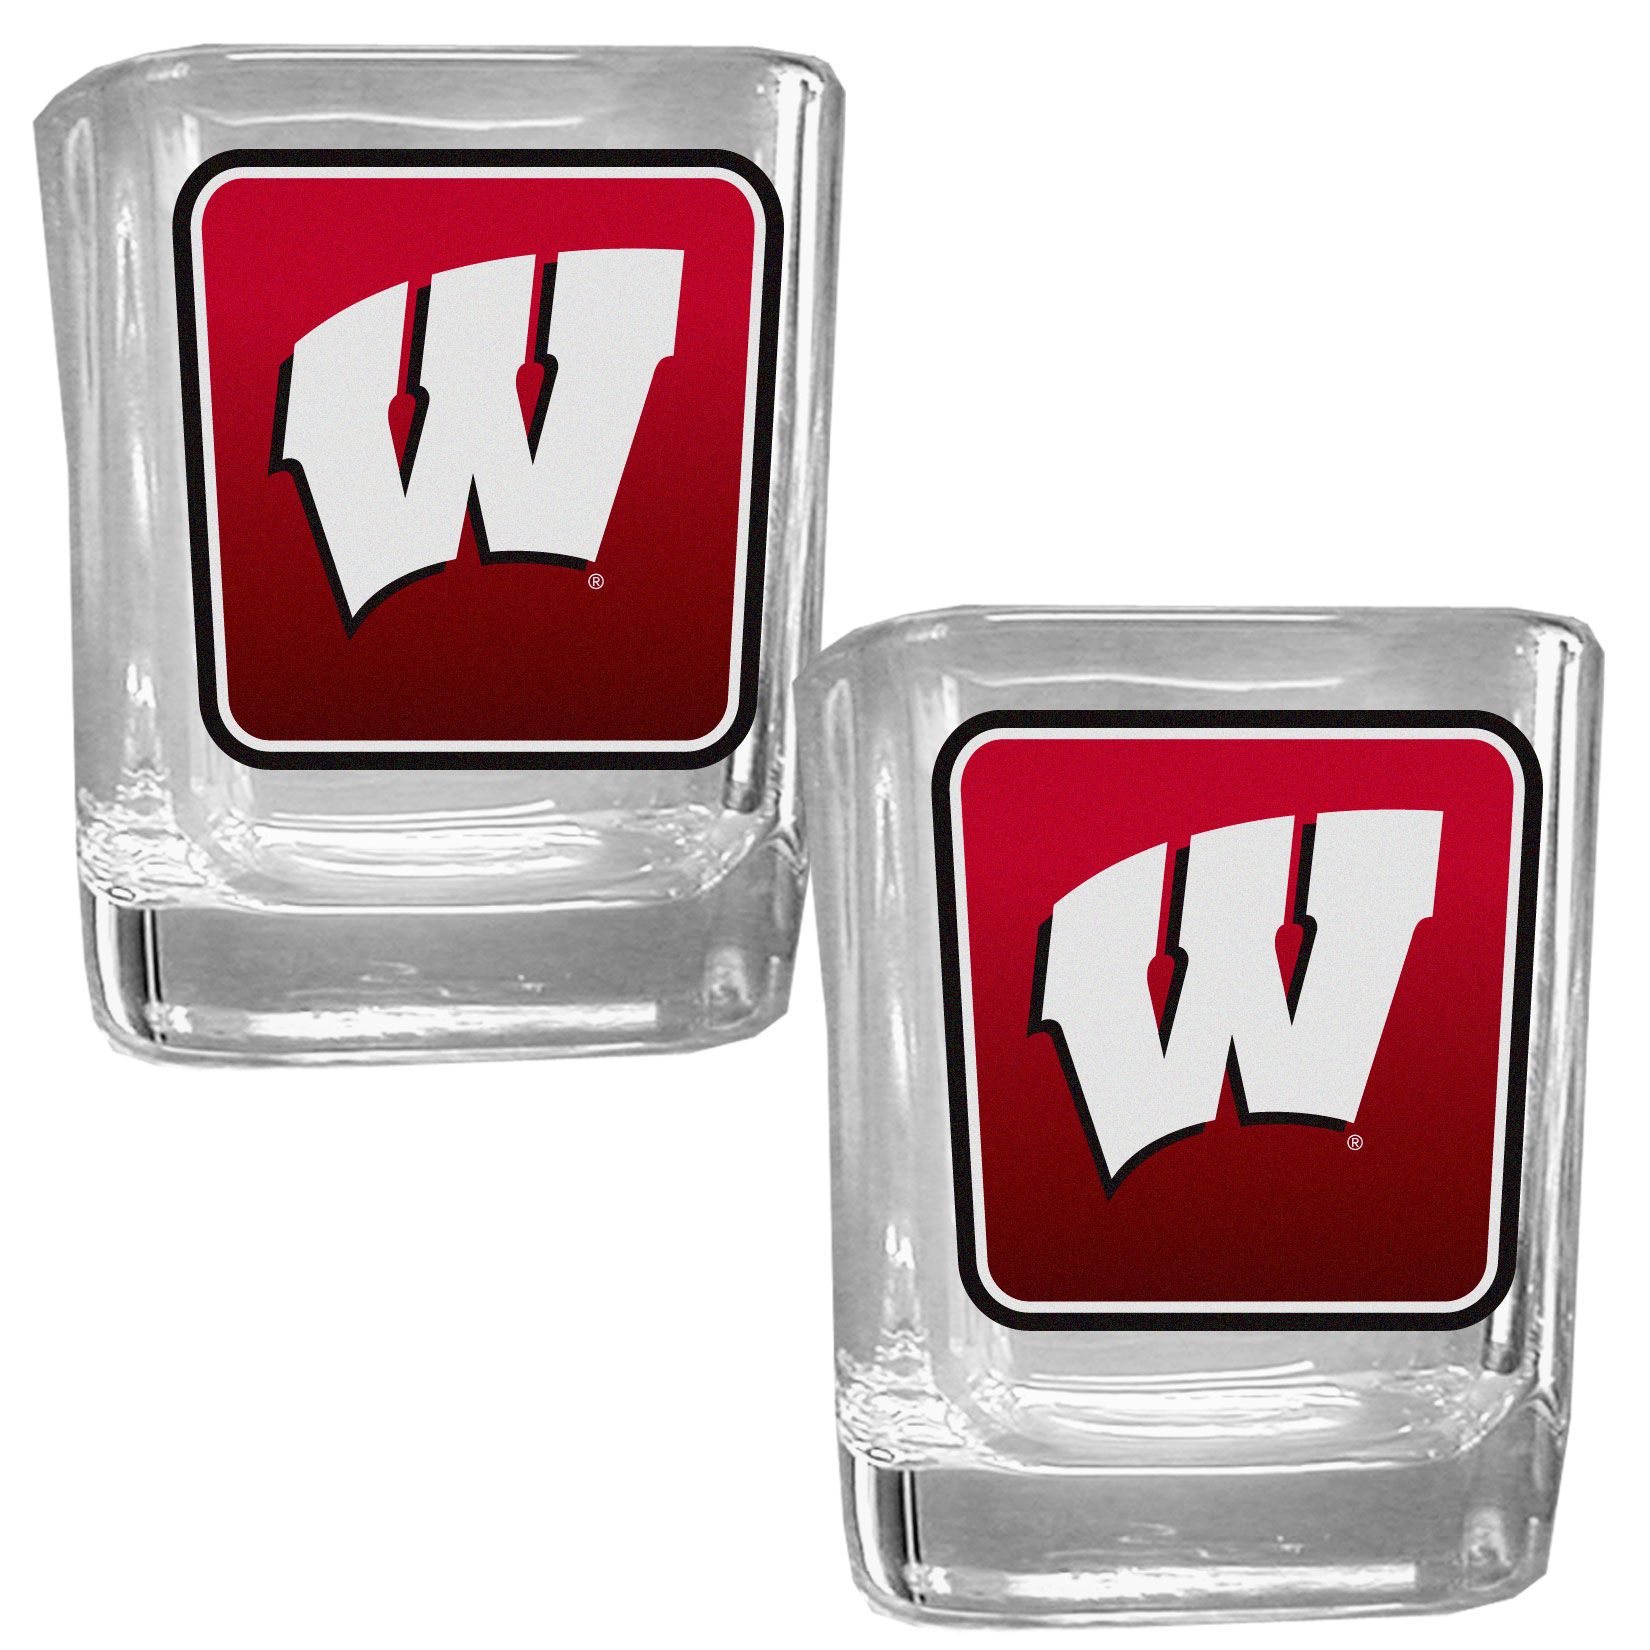 Wisconsin Badgers Square Glass Shot Glass Set - Our glass shot glasses are perfect for collectors or any game day event. The 2 ounce glasses feature bright, vidid digital Wisconsin Badgers graphics. Comes in a set of 2.